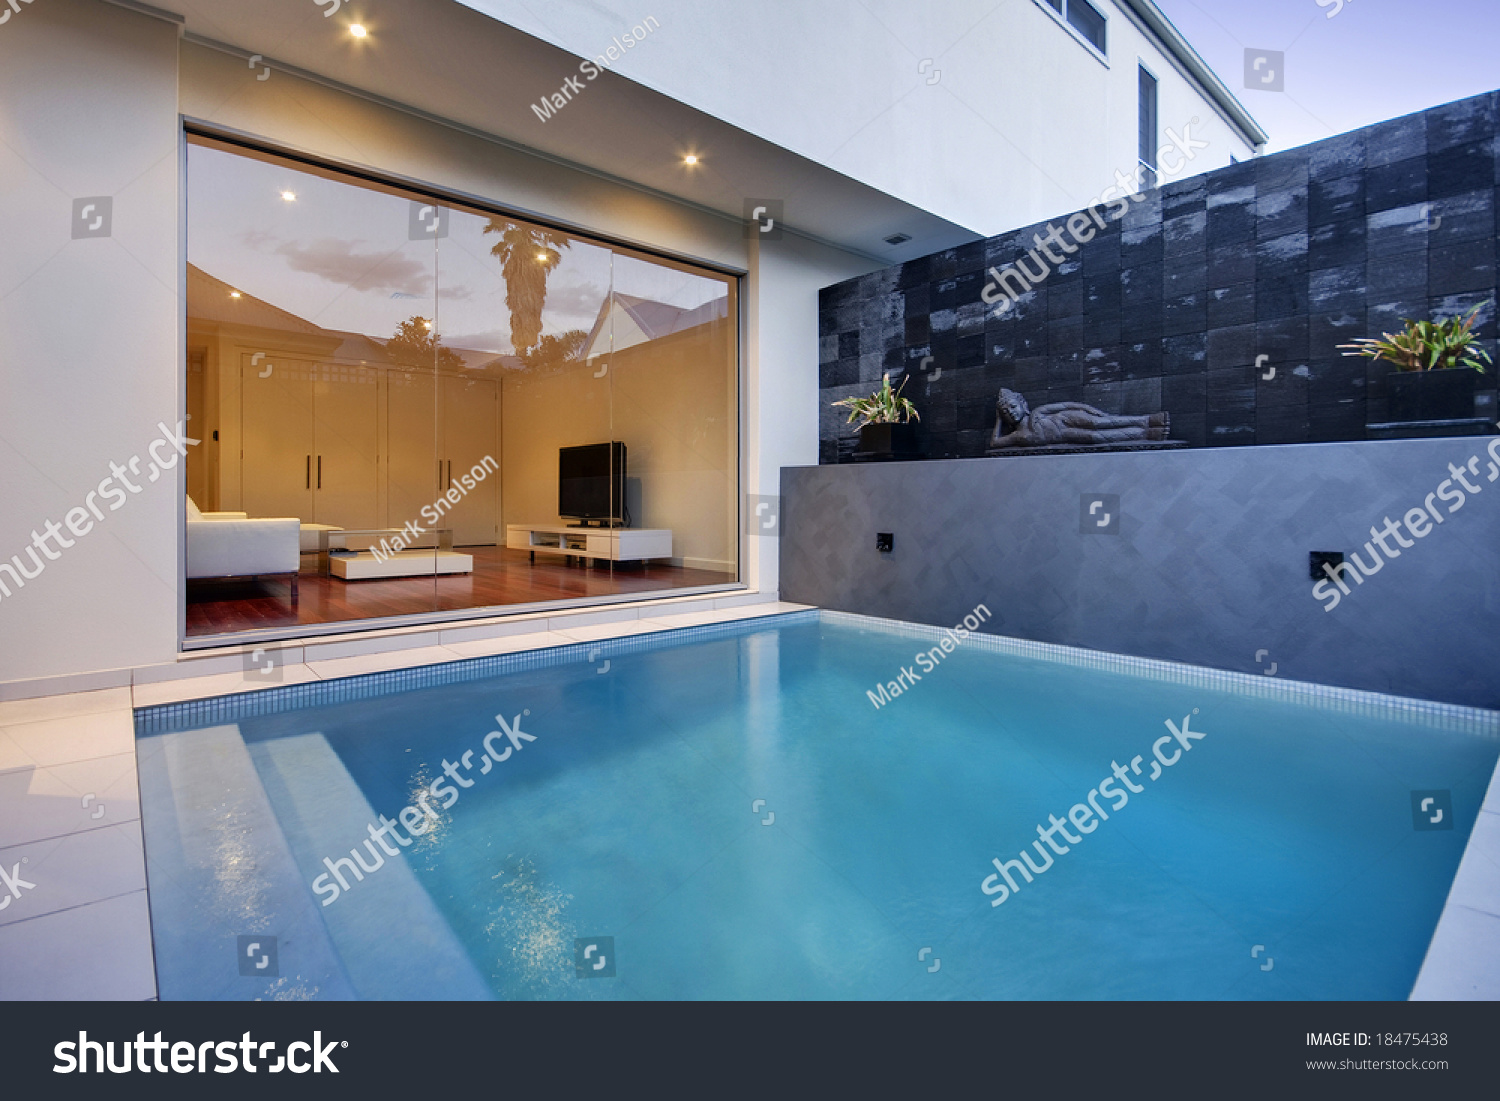 Pool area of a luxury terrace house stock photo 18475438 for Luxury pool area